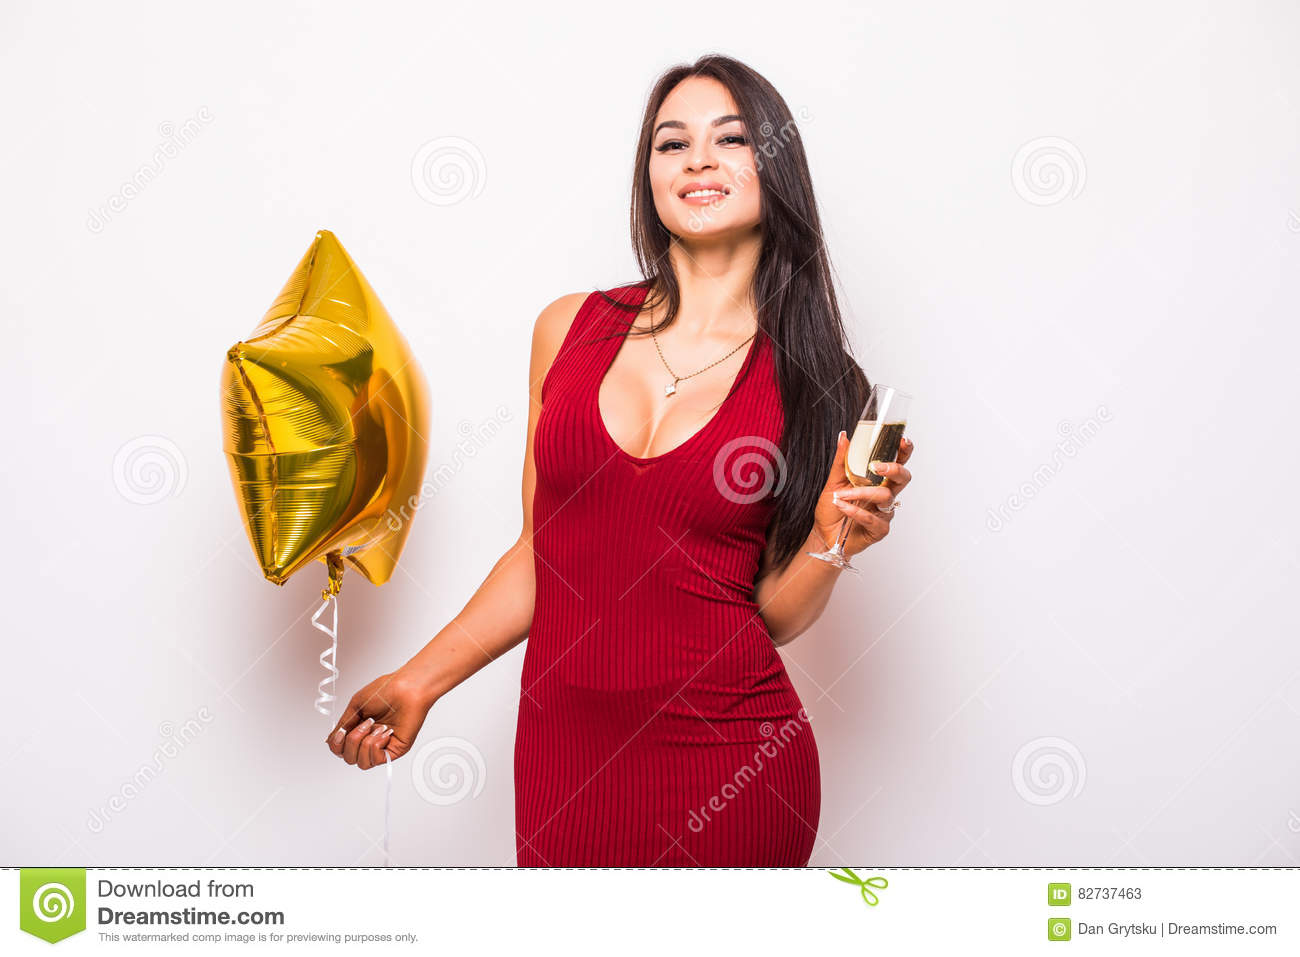 7dd0b44b3685 Pretty young woman in red dress with gold star shaped balloon smiling and drinking  champagne over white background